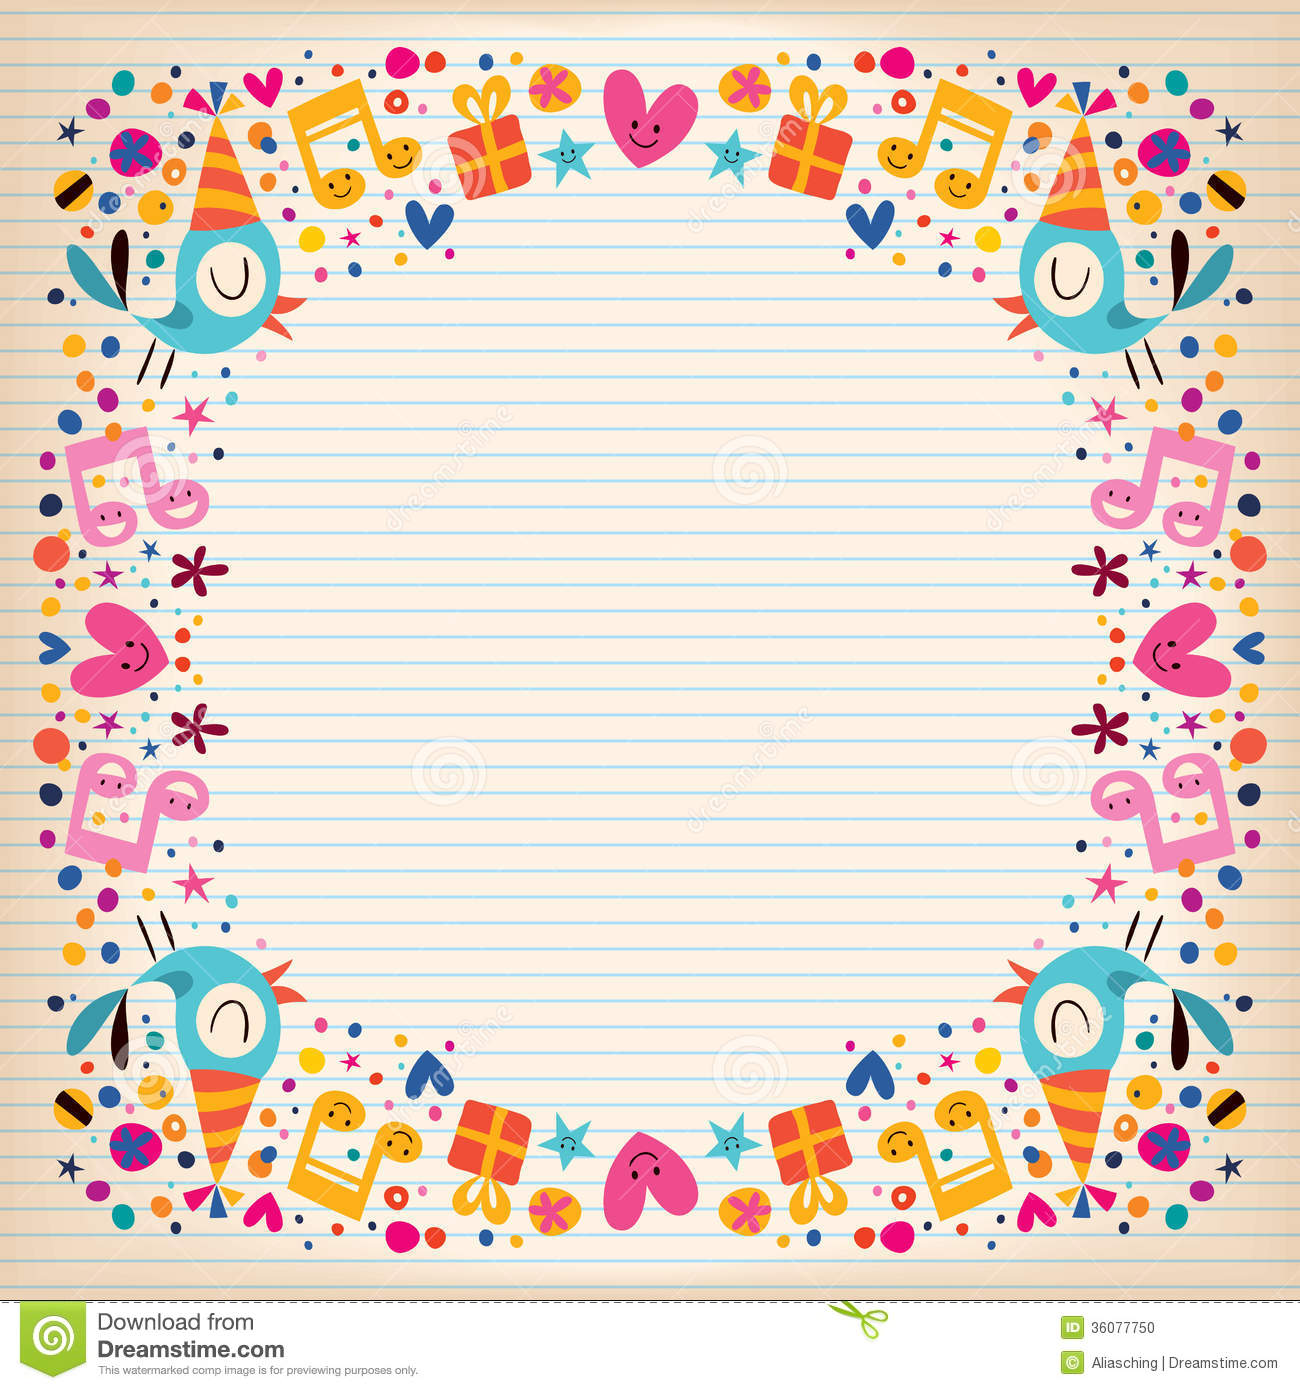 happy birthday border templates ; happy-birthday-border-lined-paper-card-cute-characters-36077750